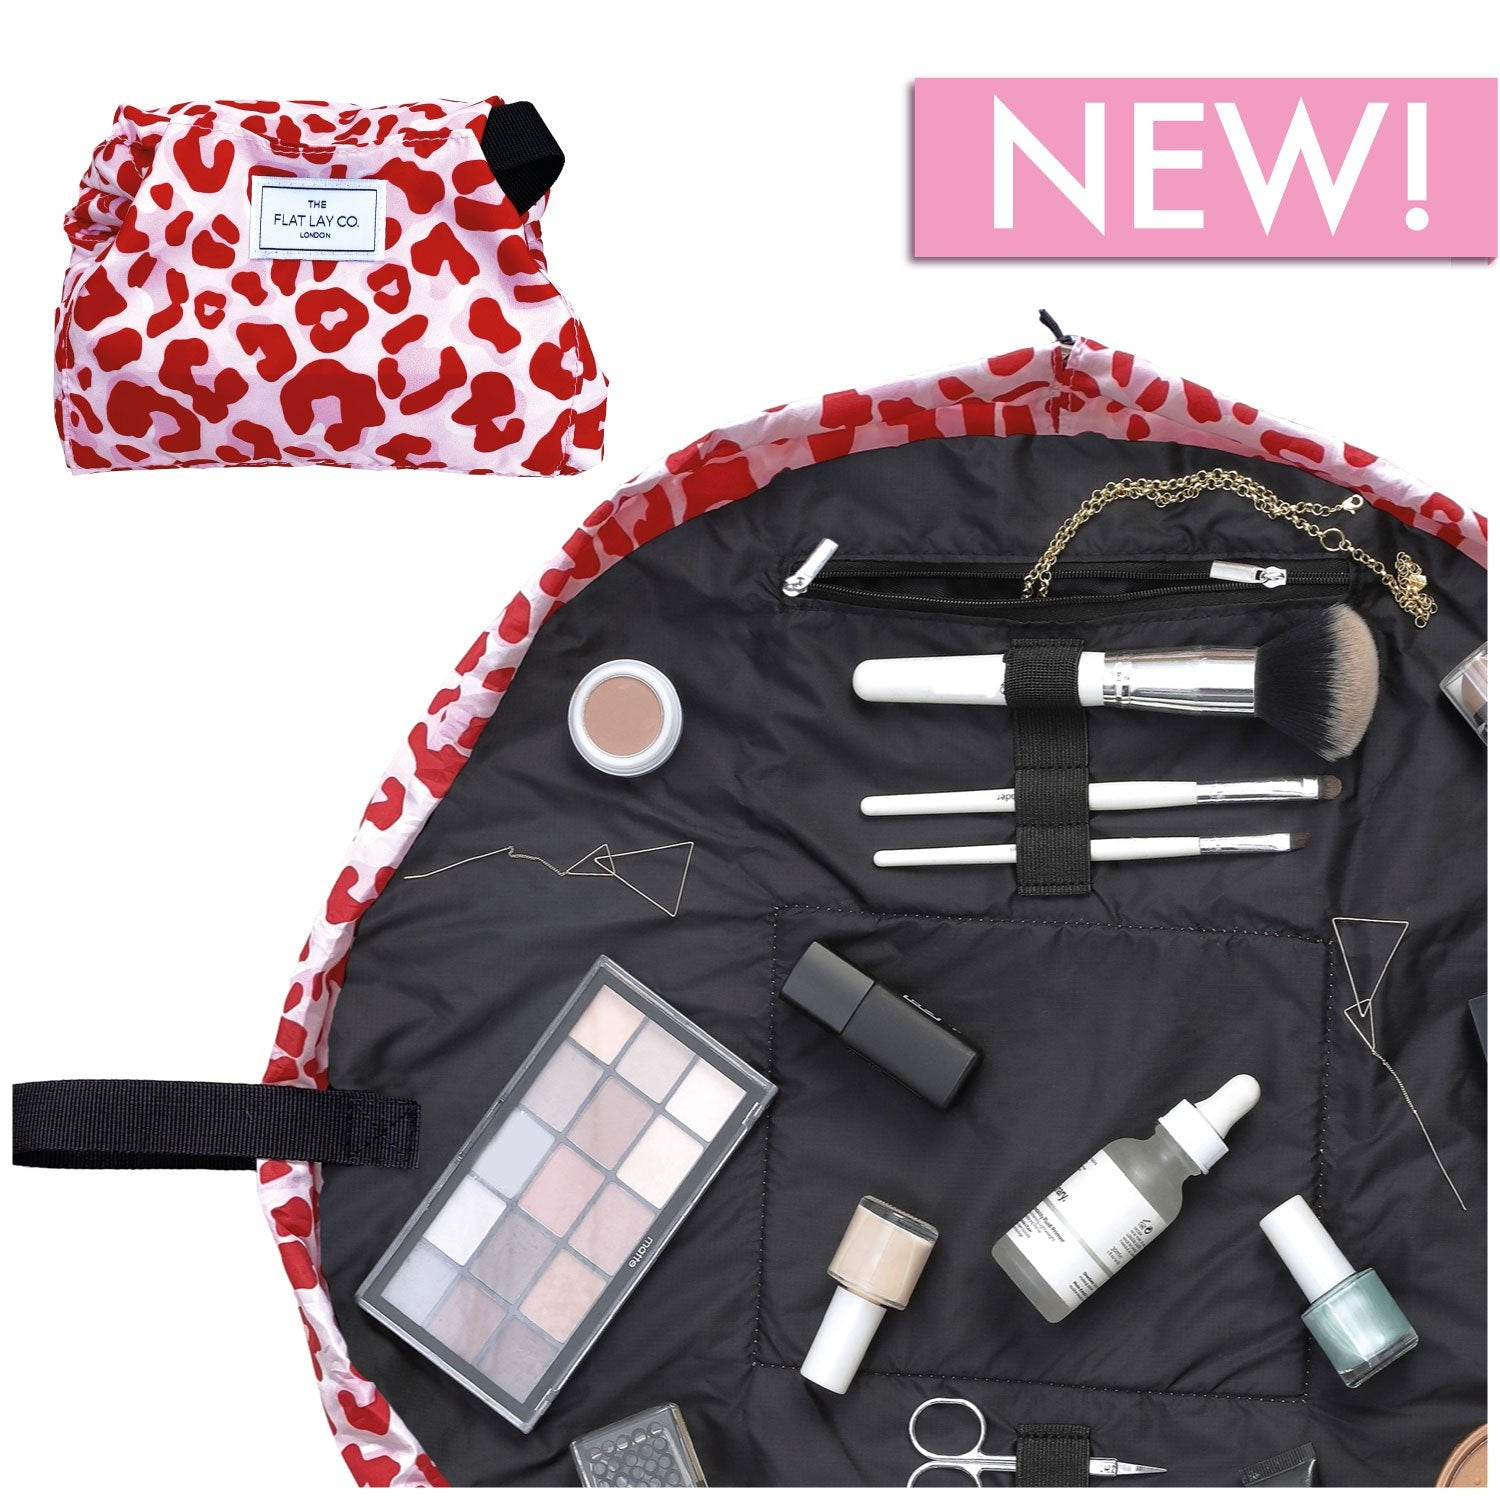 The Flat Lay Co. Pink Leopard Full Size Flat Lay Makeup Bag